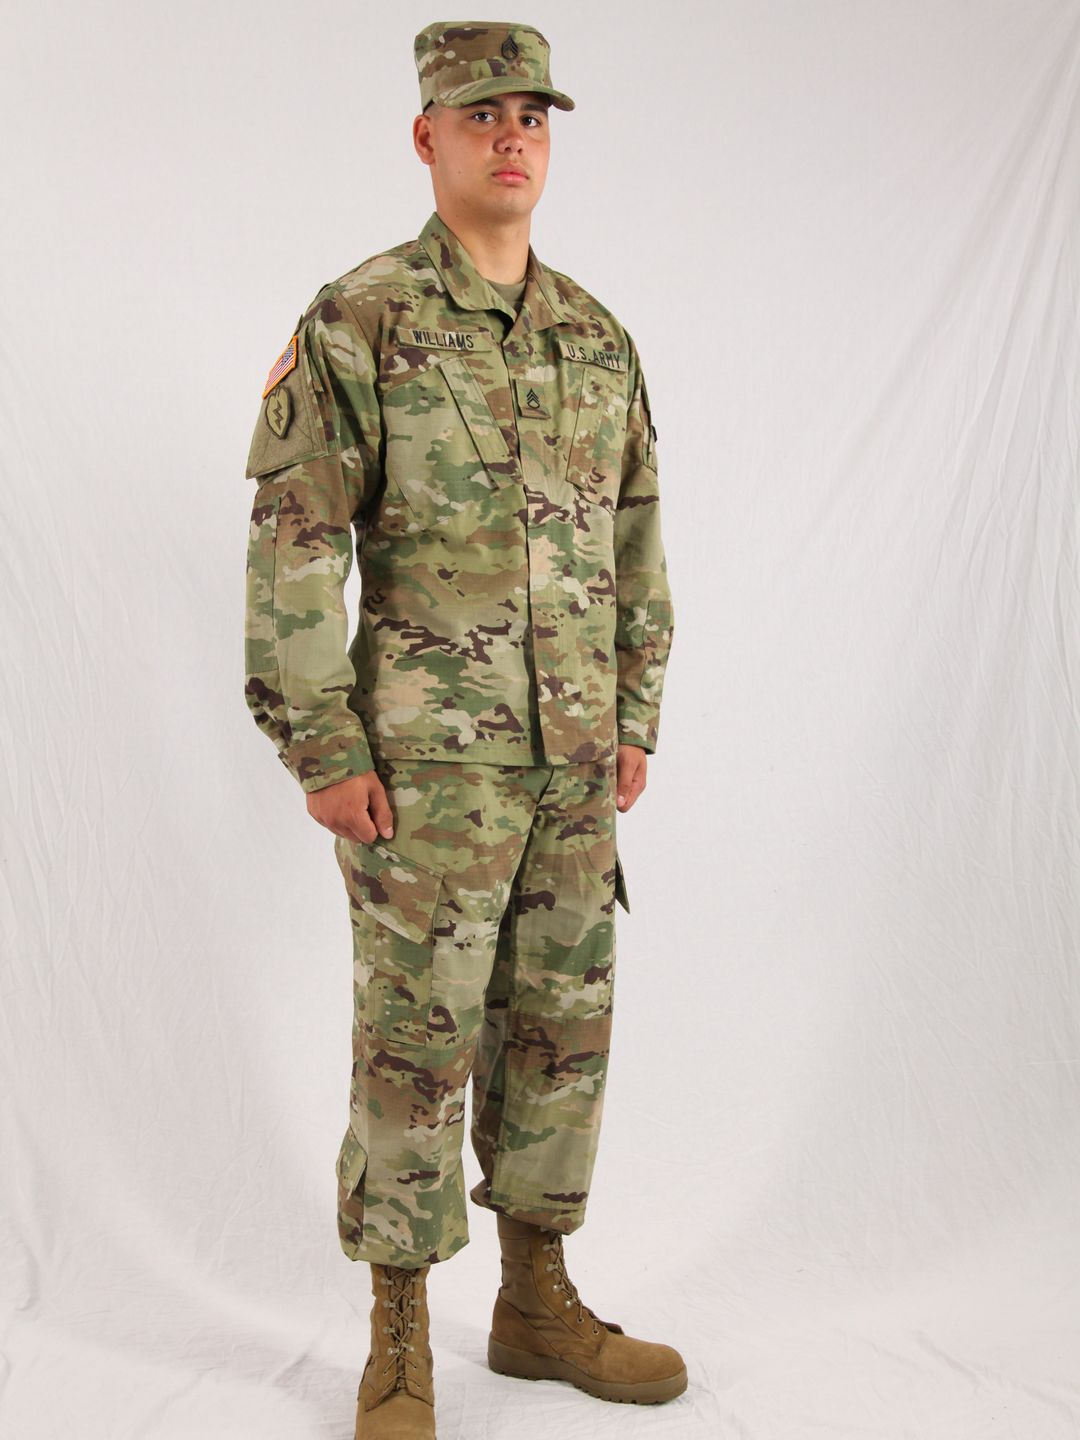 New Army Multicam Uniform 109